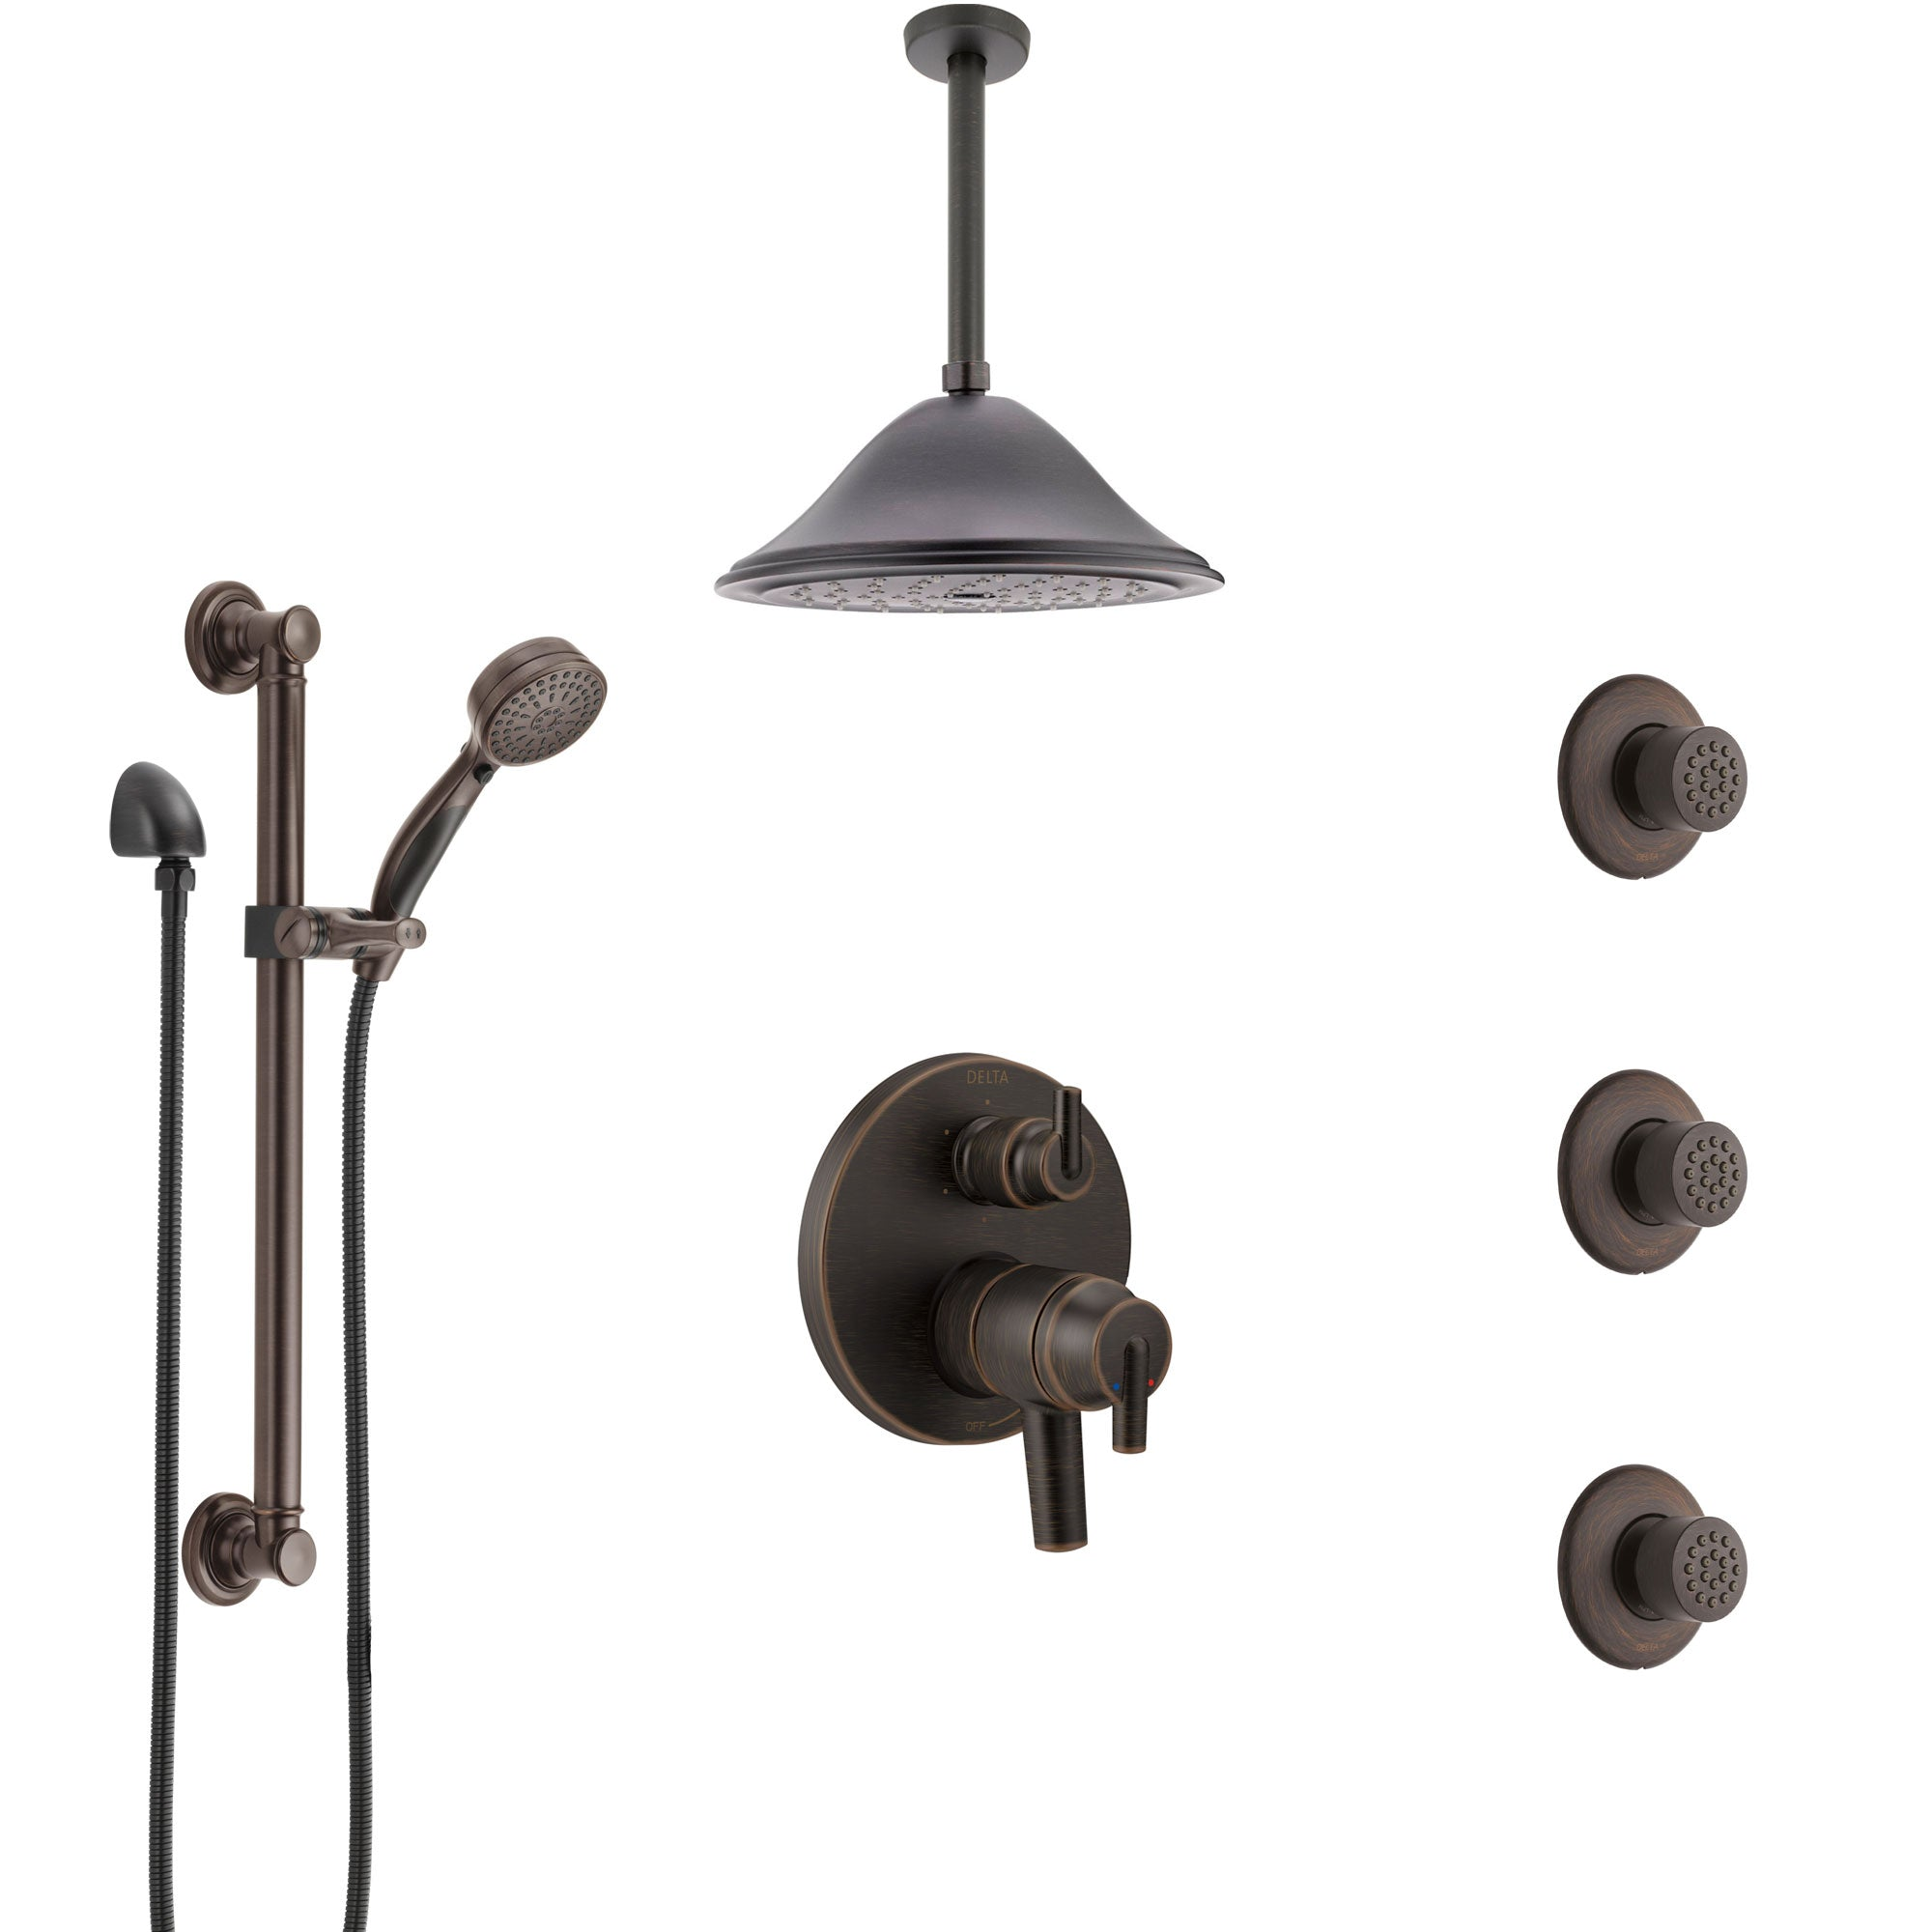 Delta Trinsic Venetian Bronze Dual Control Handle Shower System, Integrated Diverter, Ceiling Showerhead, 3 Body Jets, Grab Bar Hand Spray SS27959RB8